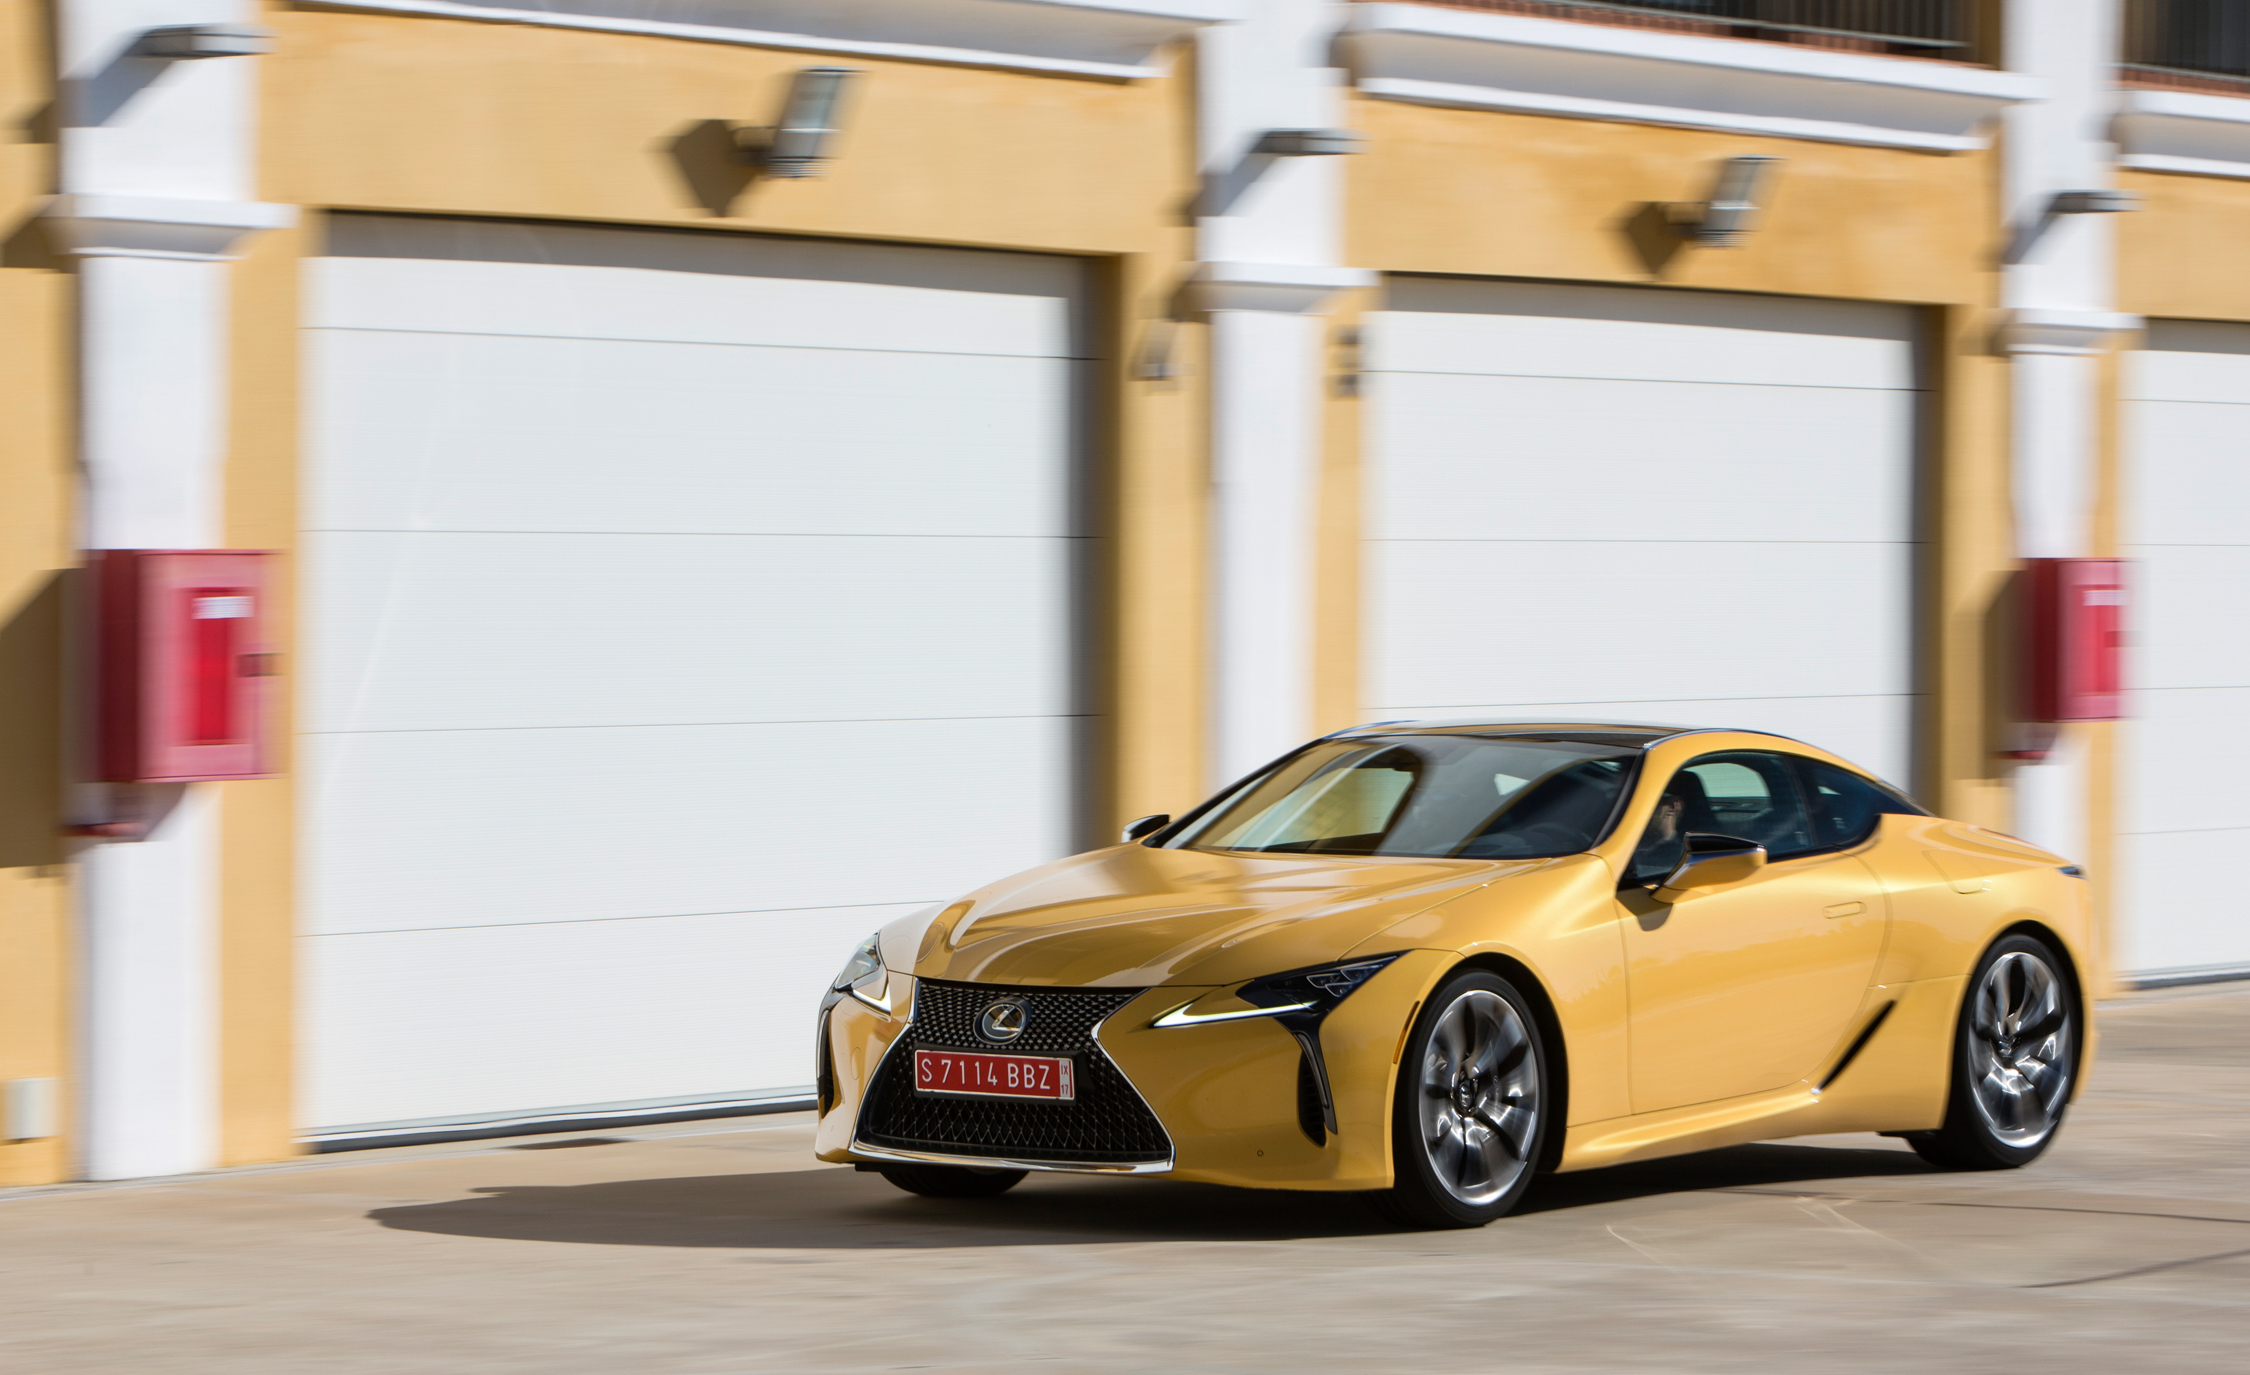 2018 Lexus Lc 500 Yellow (Photo 28 of 84)